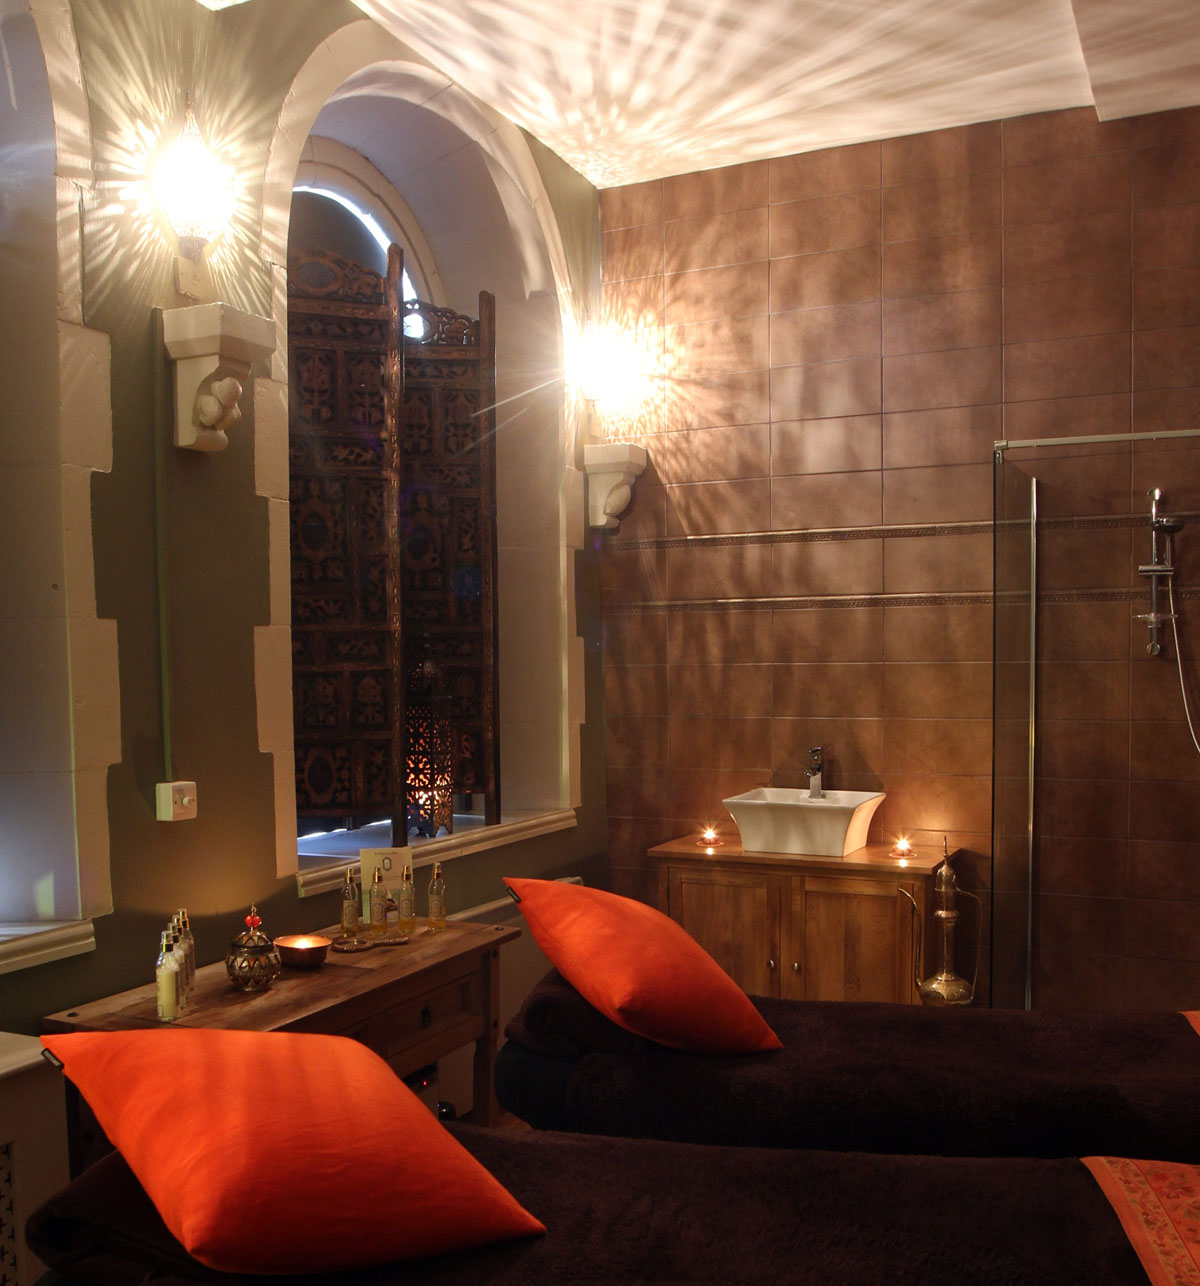 The spa's interior design is based on the couples' experience of other Moroccan spas and Banyan Tree spas in Thailand / Metro.co.uk